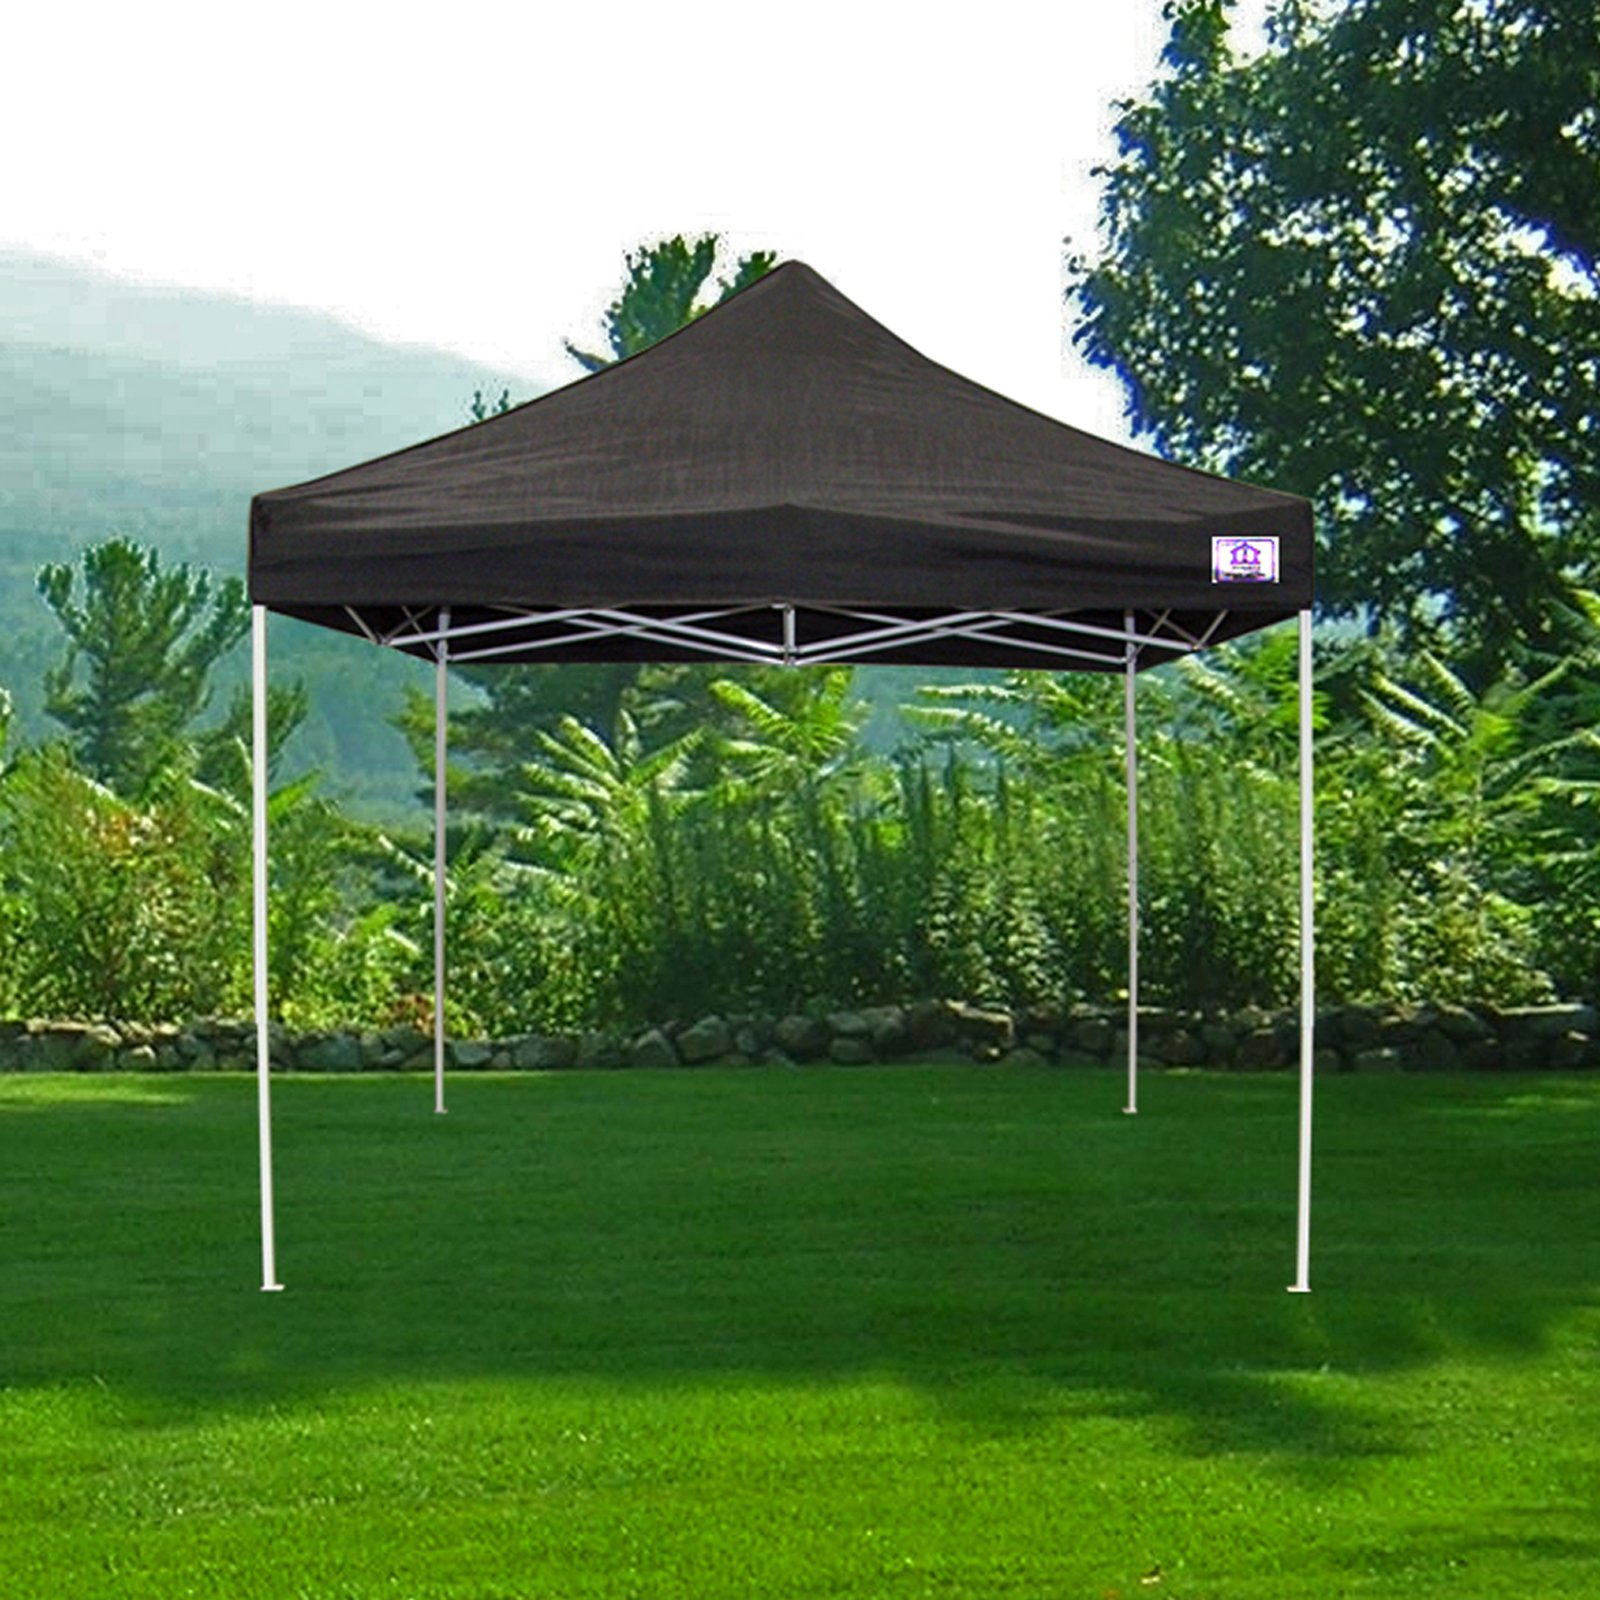 Impact Canopy TL 10x10 ft. Pop Up Canopy Tent Instant Beach Canopy Tent Gazebo With Wheeled Roller Bag - Walmart.com & Impact Canopy TL 10x10 ft. Pop Up Canopy Tent Instant Beach Canopy ...